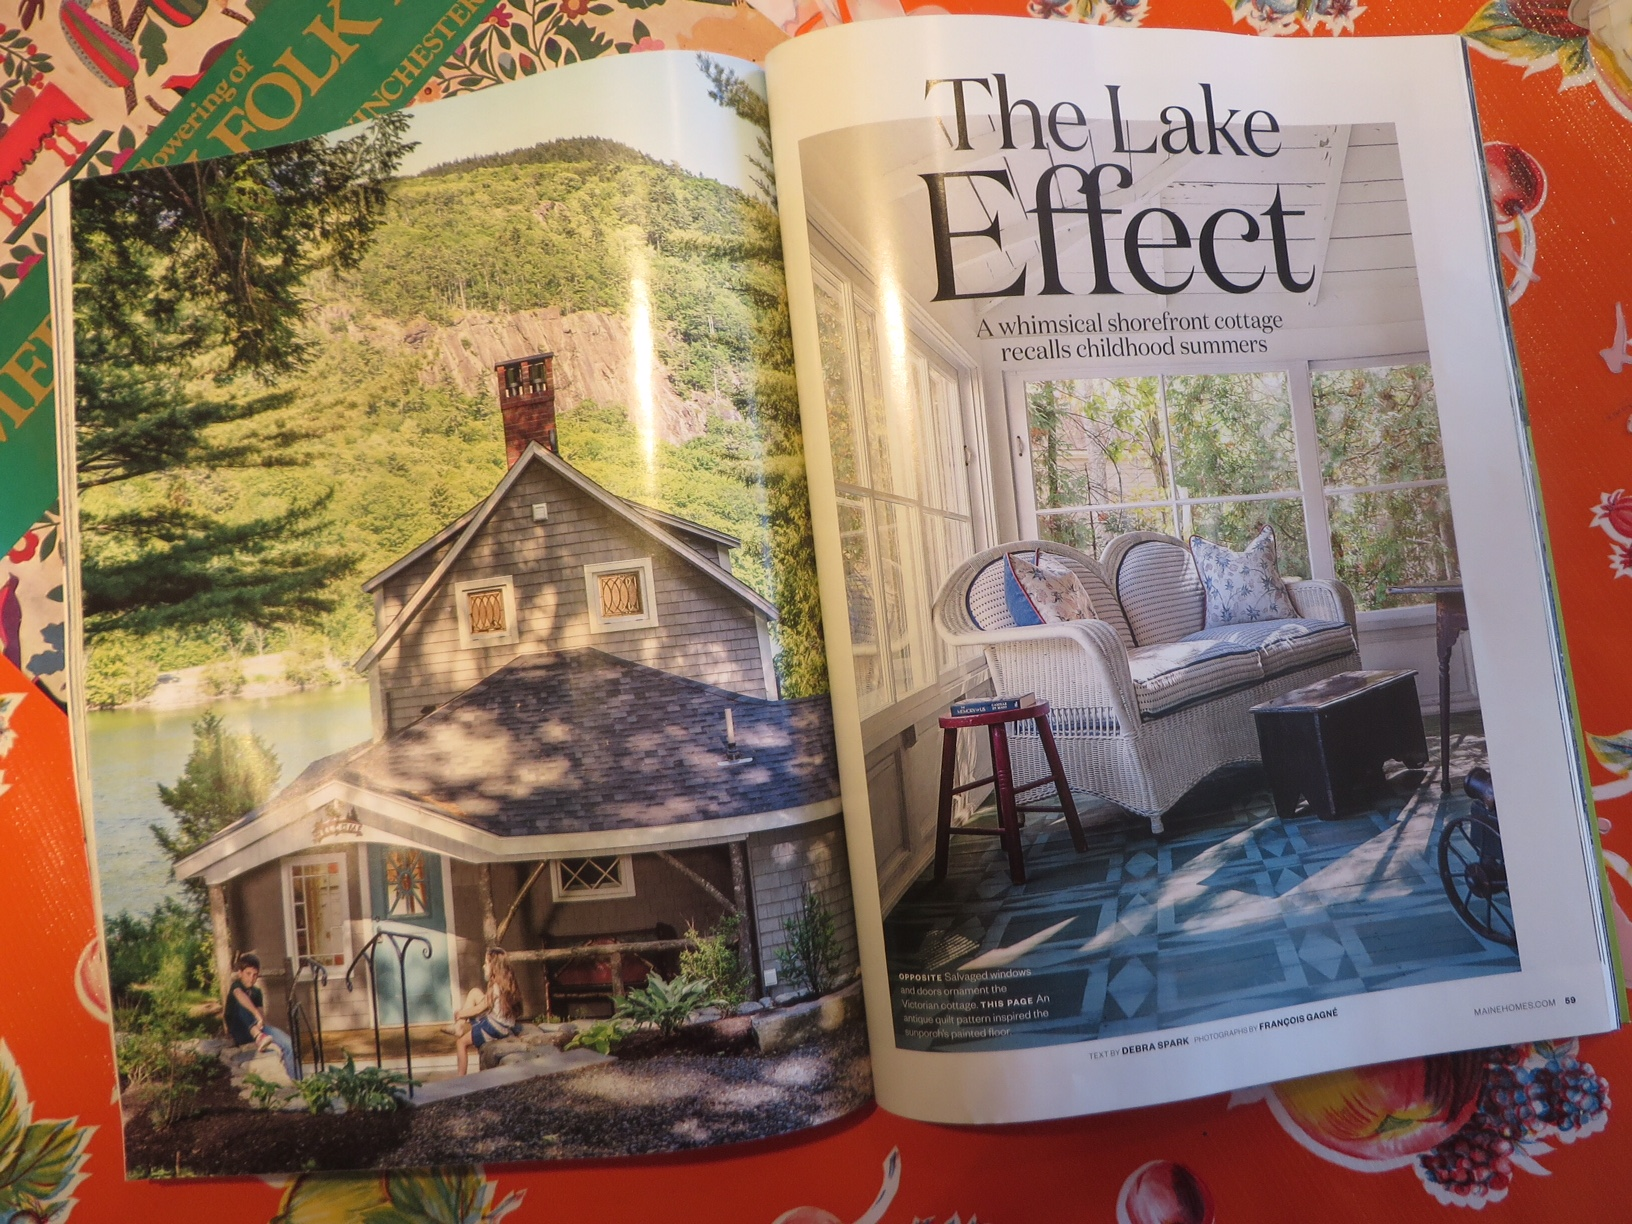 DownEast Magazine - MAINEHOMES  •  A great artcile about last years key project here in Mid Coast Maine!